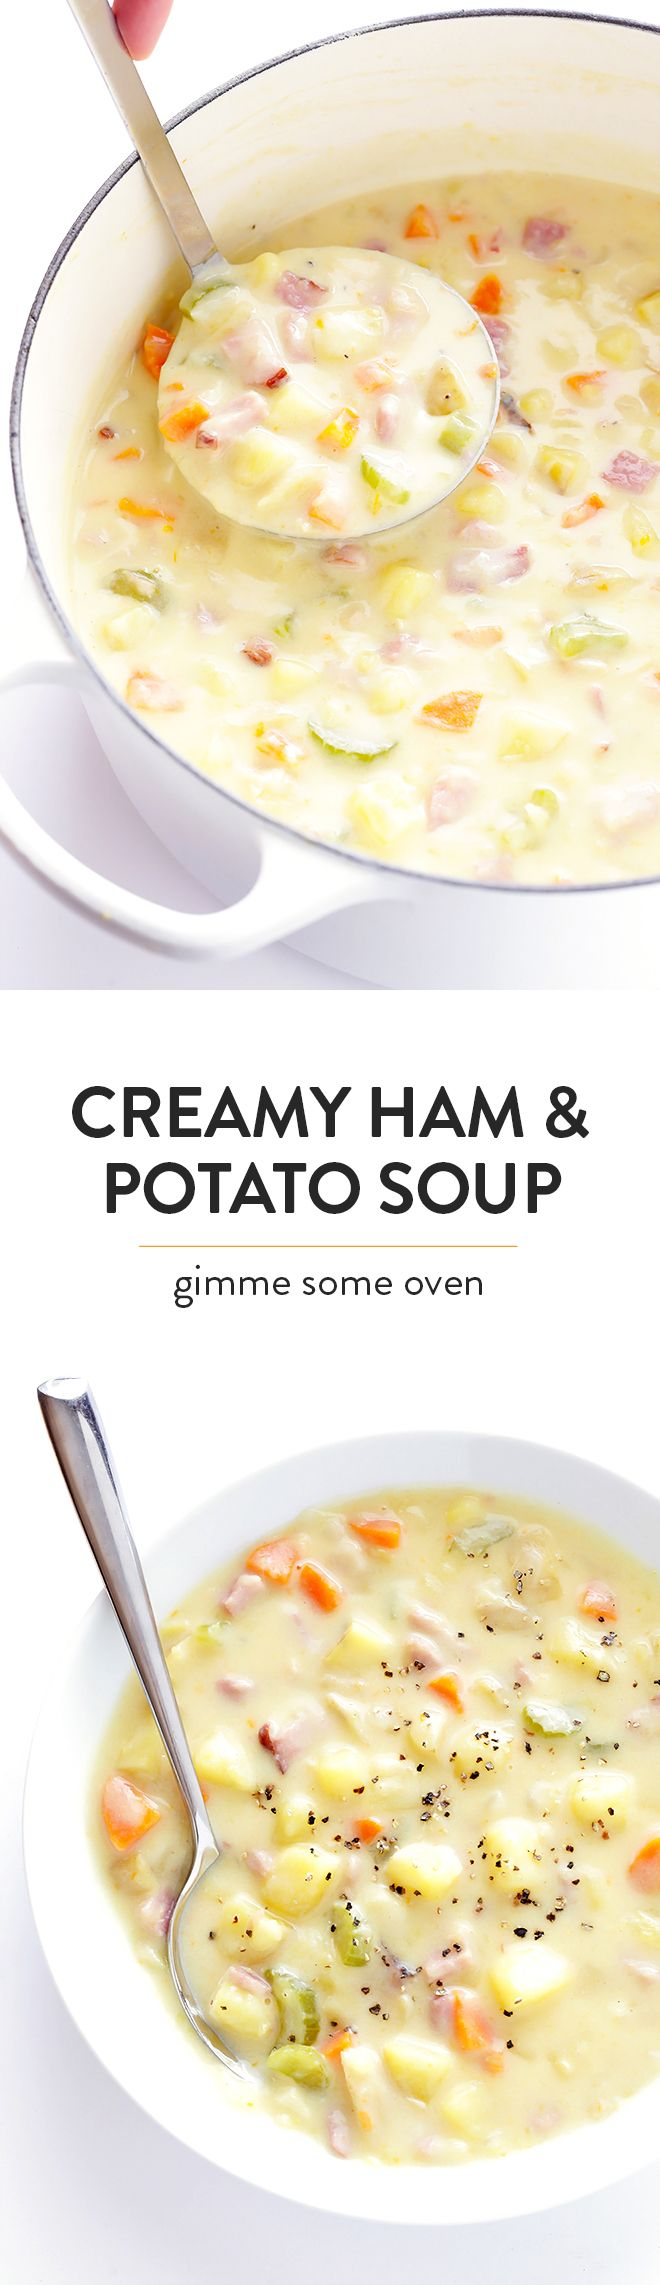 This Creamy Ham and Potato Soup recipe is easy to make, ready to go in about 30 minutes, and SO flavorful and creamy and delicious! | gimmesomeoven.com